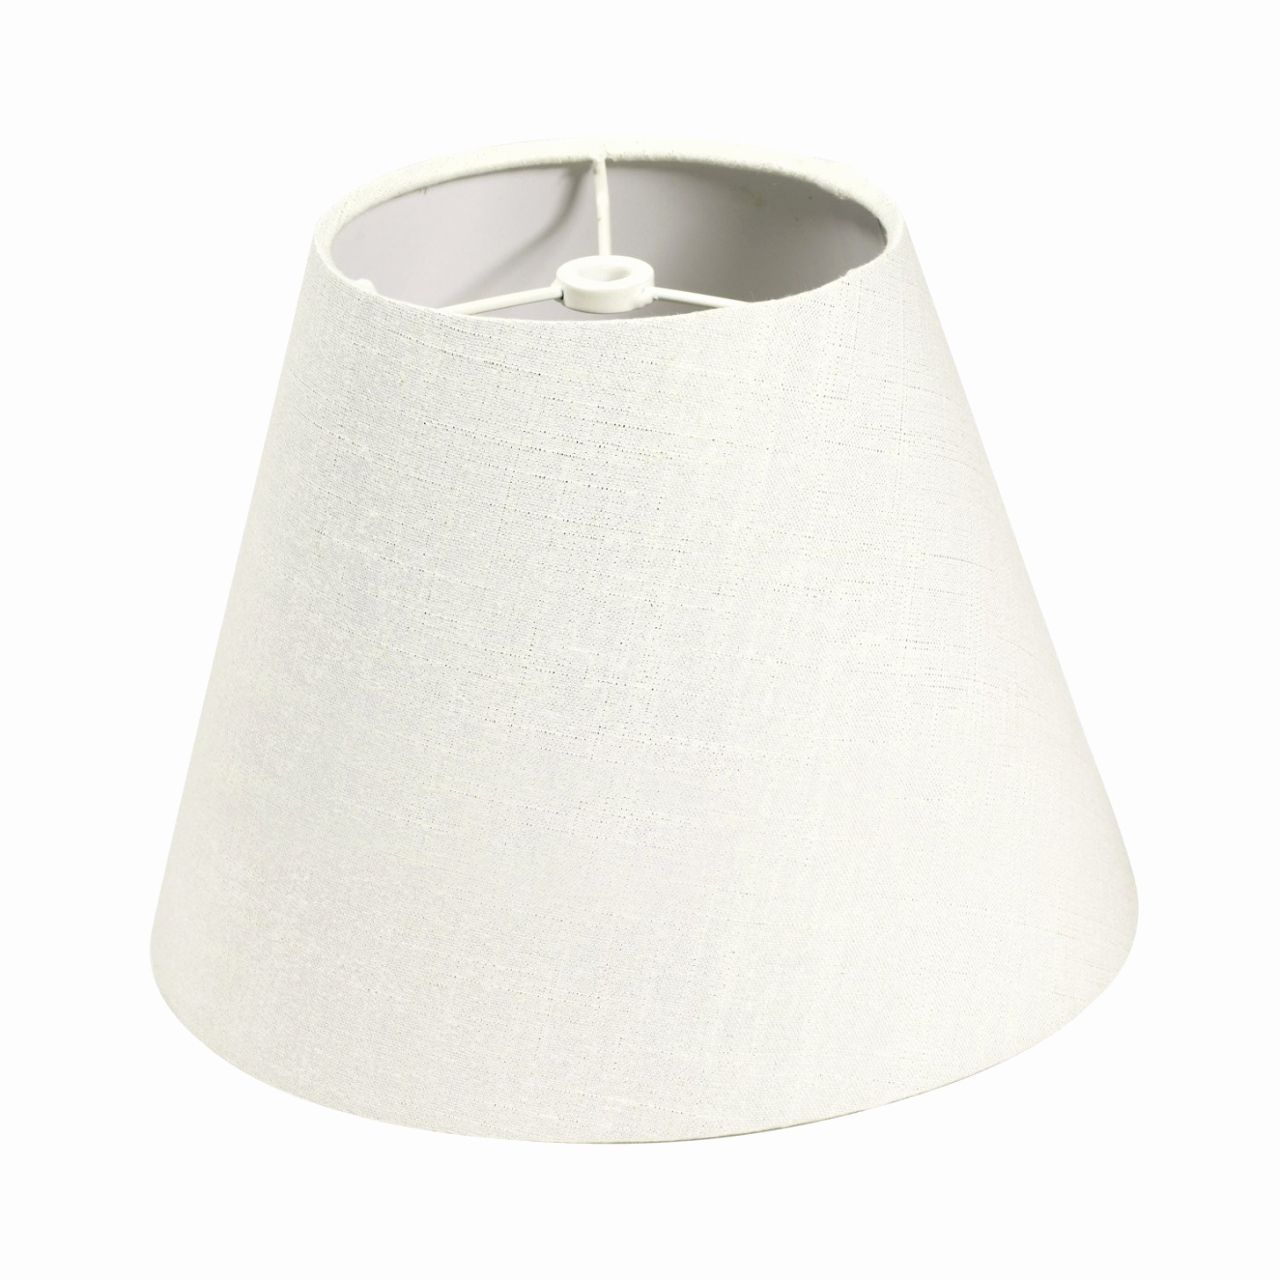 Floor Lamp Shade Replacement In 2020 White Lamp Shade Lamp Shade White Lamp